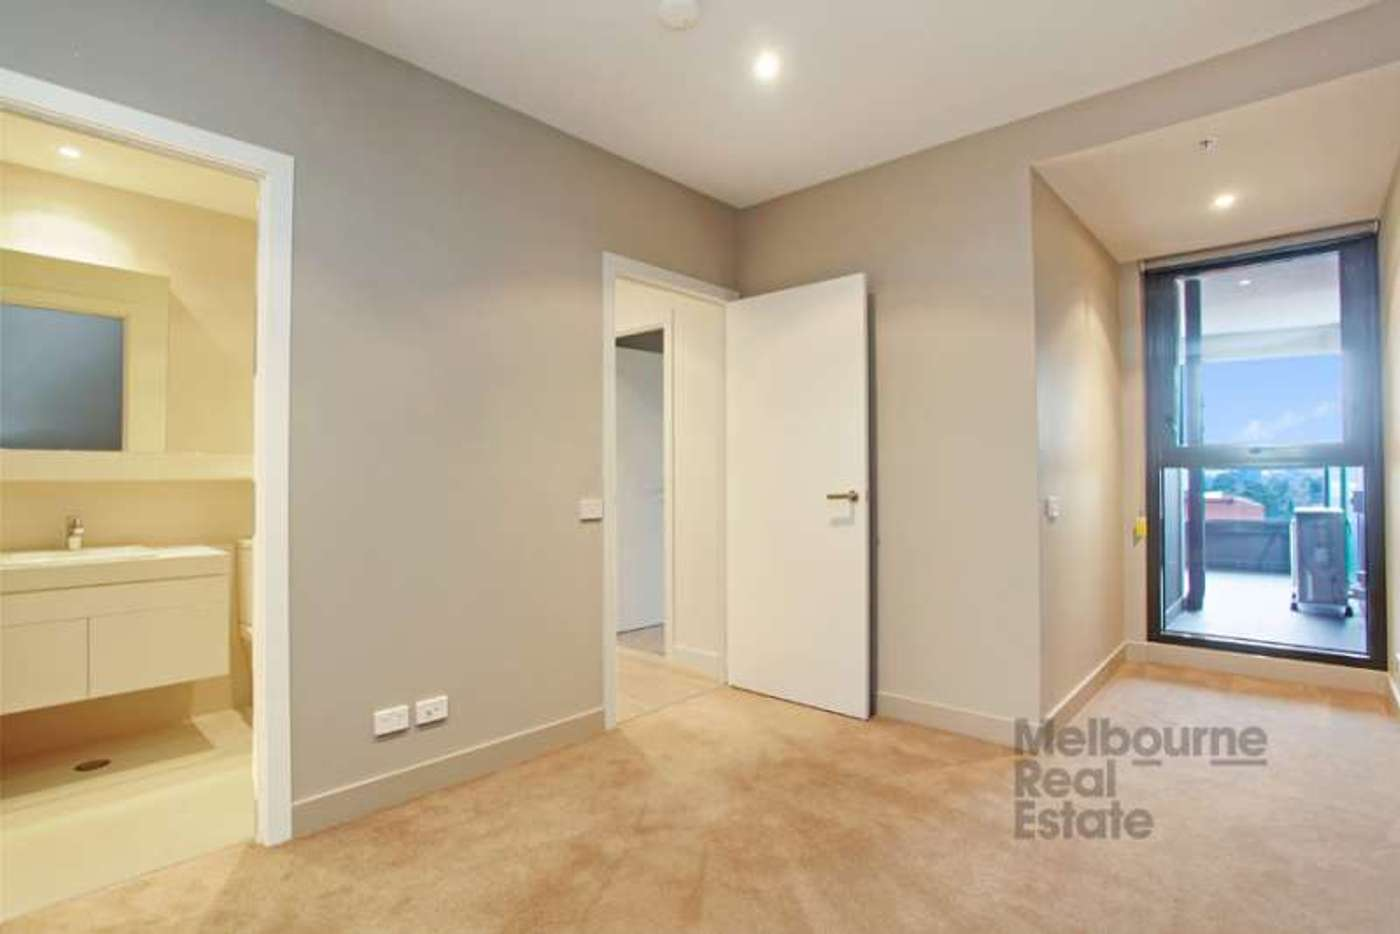 Sixth view of Homely apartment listing, 2205/38 Albert Road, South Melbourne VIC 3205